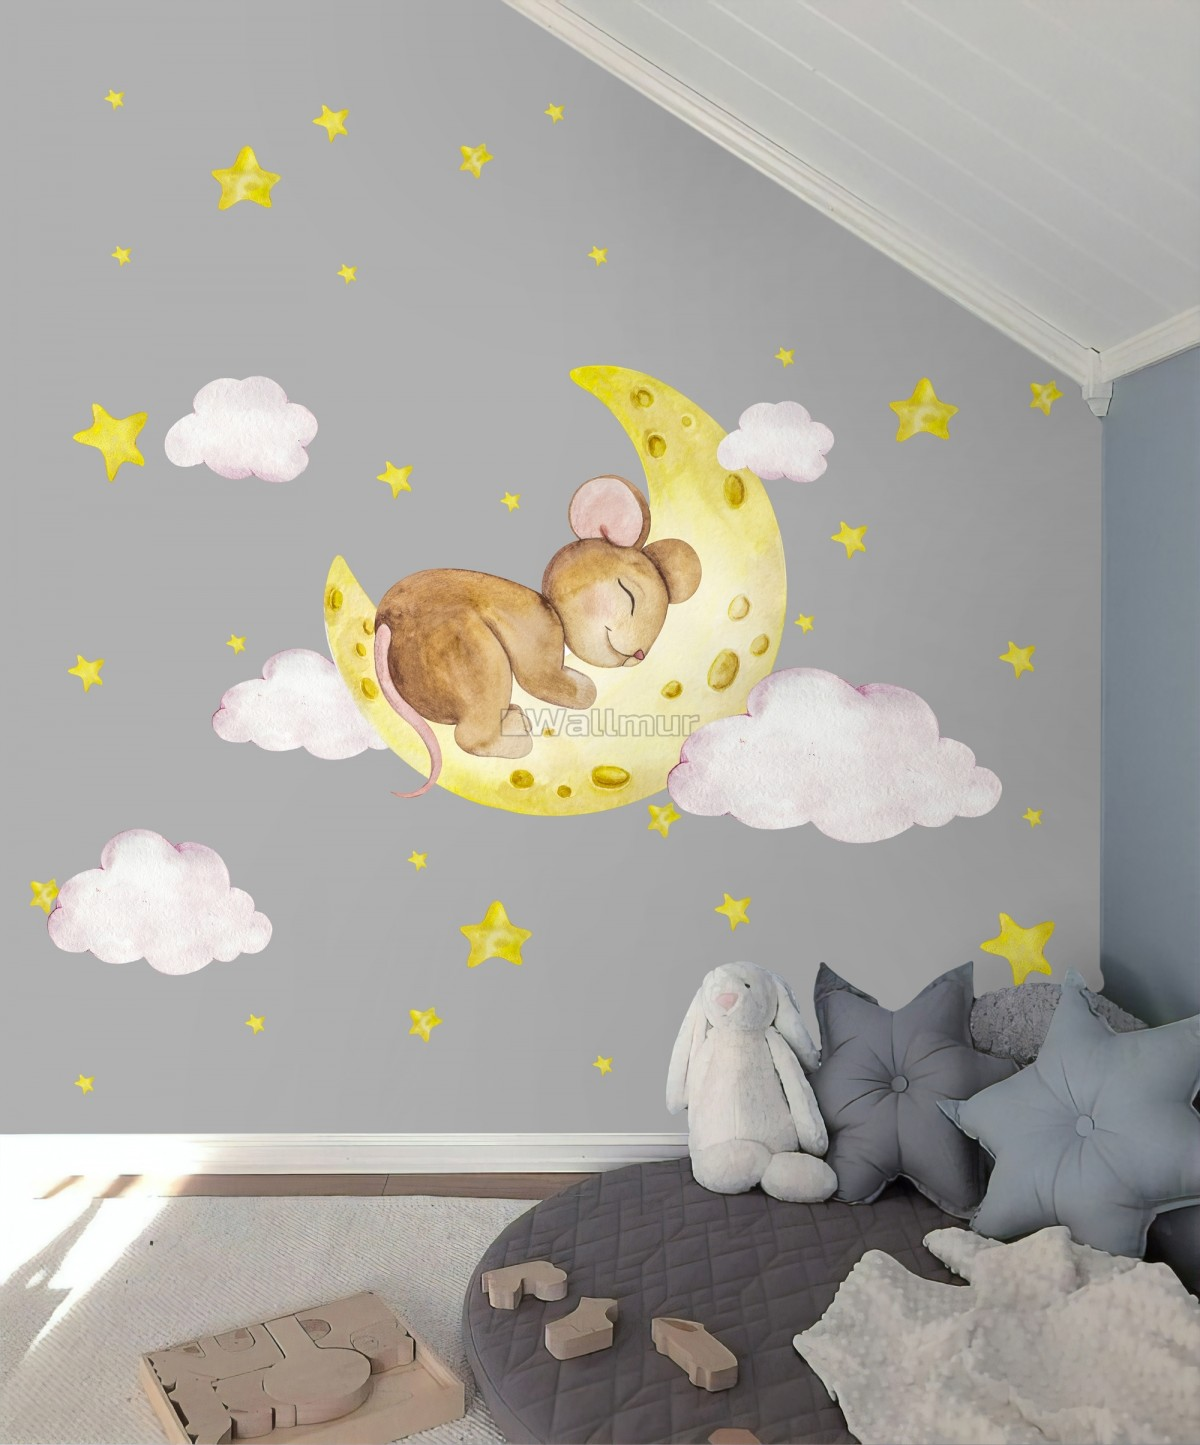 Kids Cute Mouse on the Crescent Moon and Watercolor Yellow Stars Wall Decal Sticker